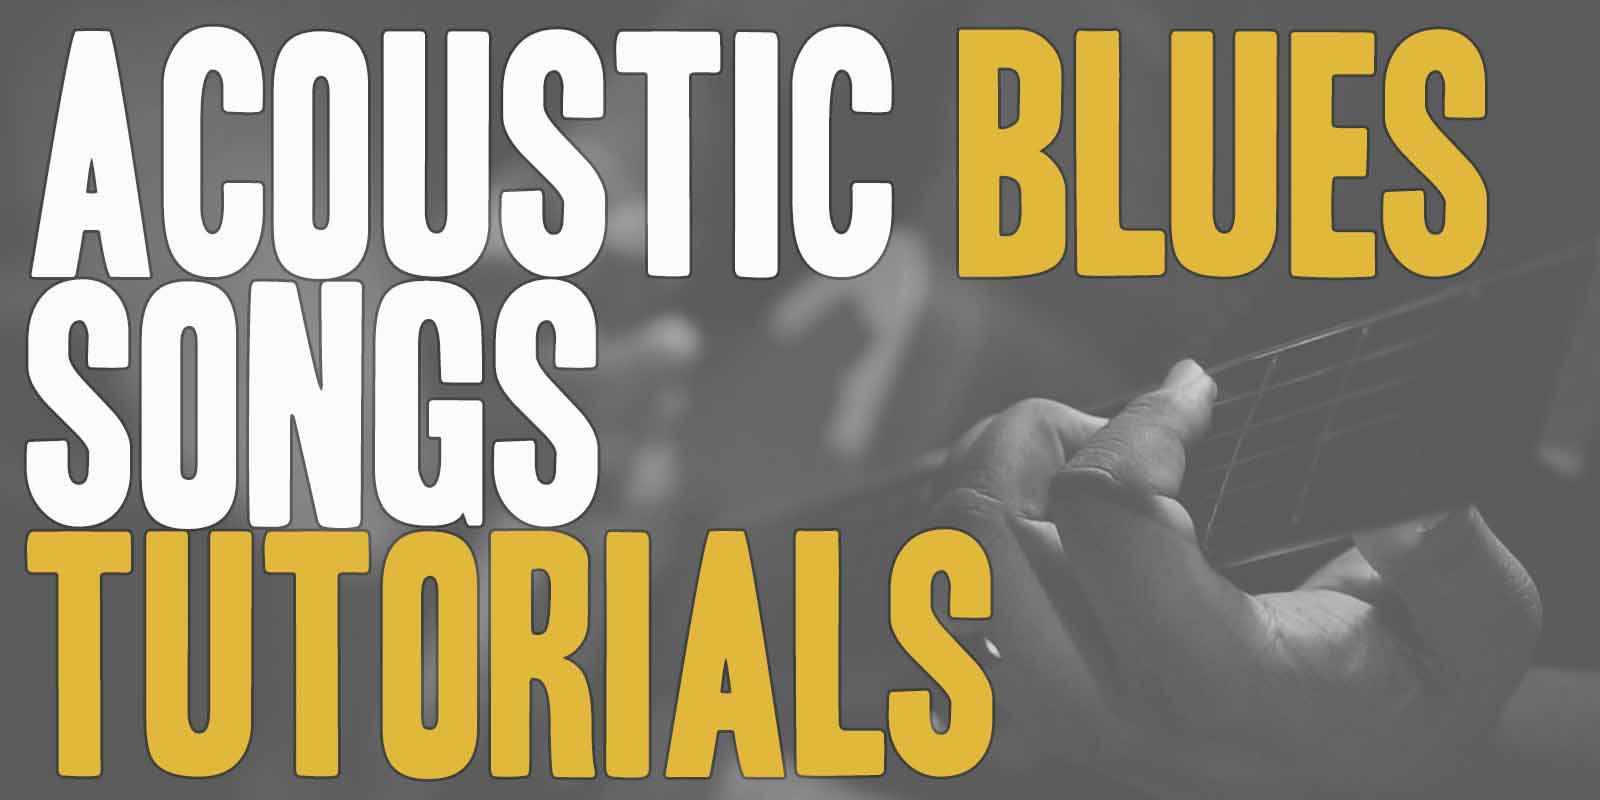 ACOUSTIC BLUES SONGS TUTORIALS Learning to play the most famous blues songs will be so much easier with Burninguitar's blues songs tutorials